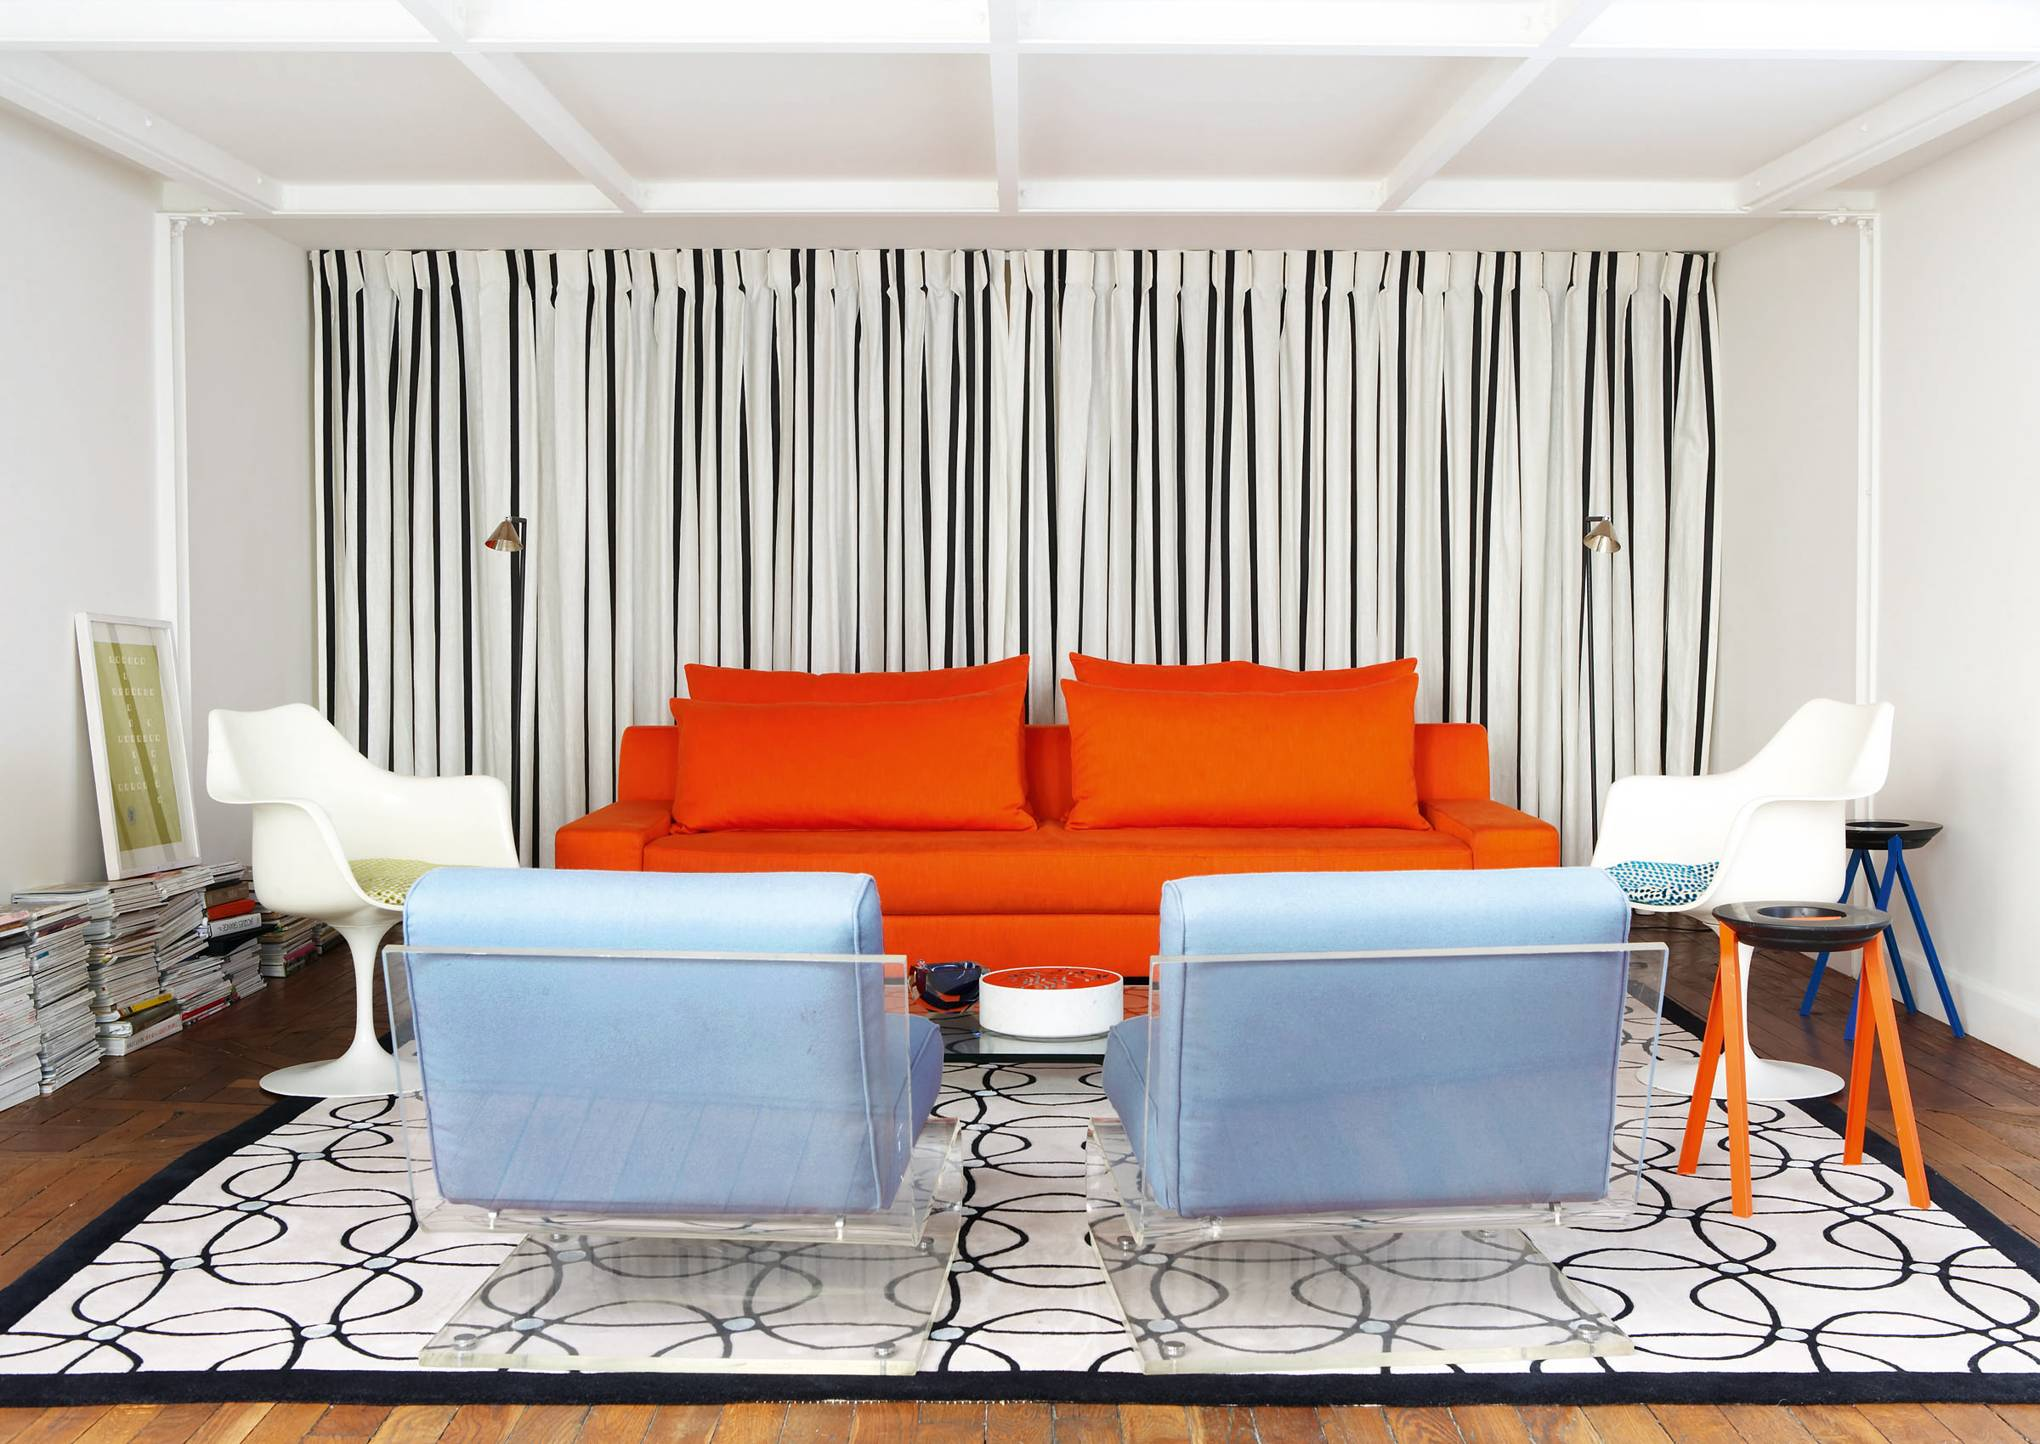 Vincent Frey has transformed the former Pierre Frey archive into a stylishly modern apartment